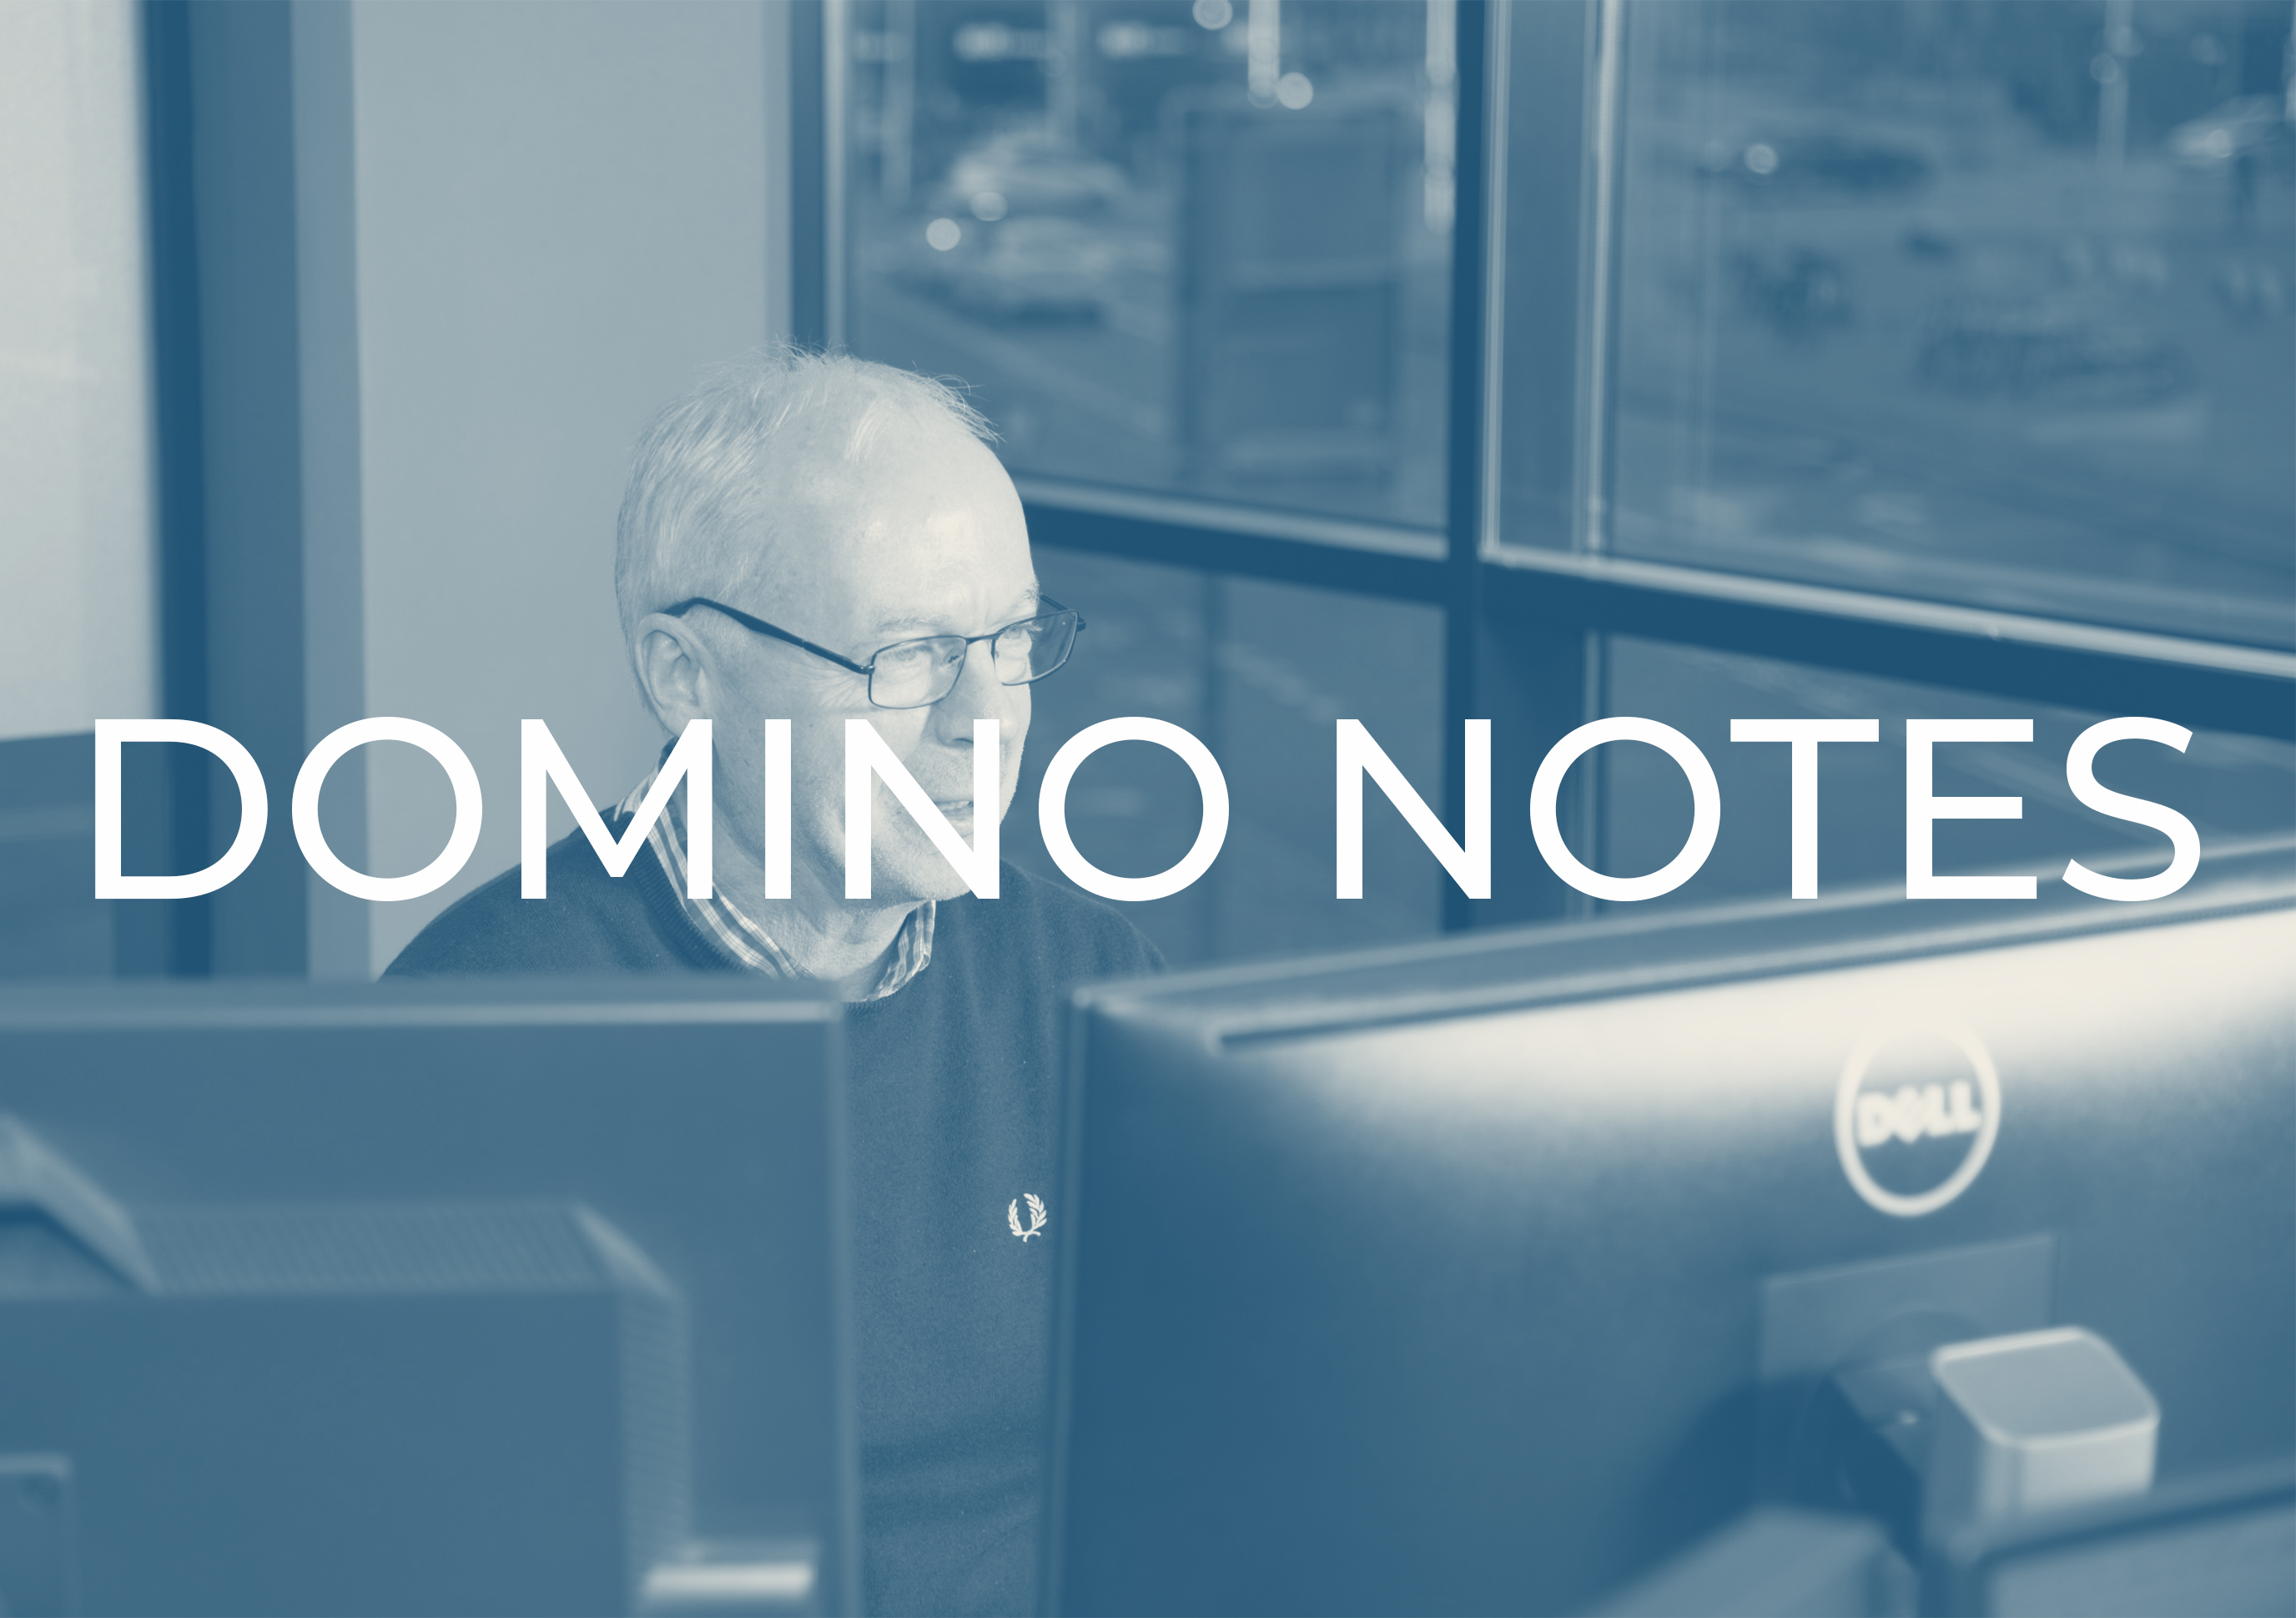 Domino Notes